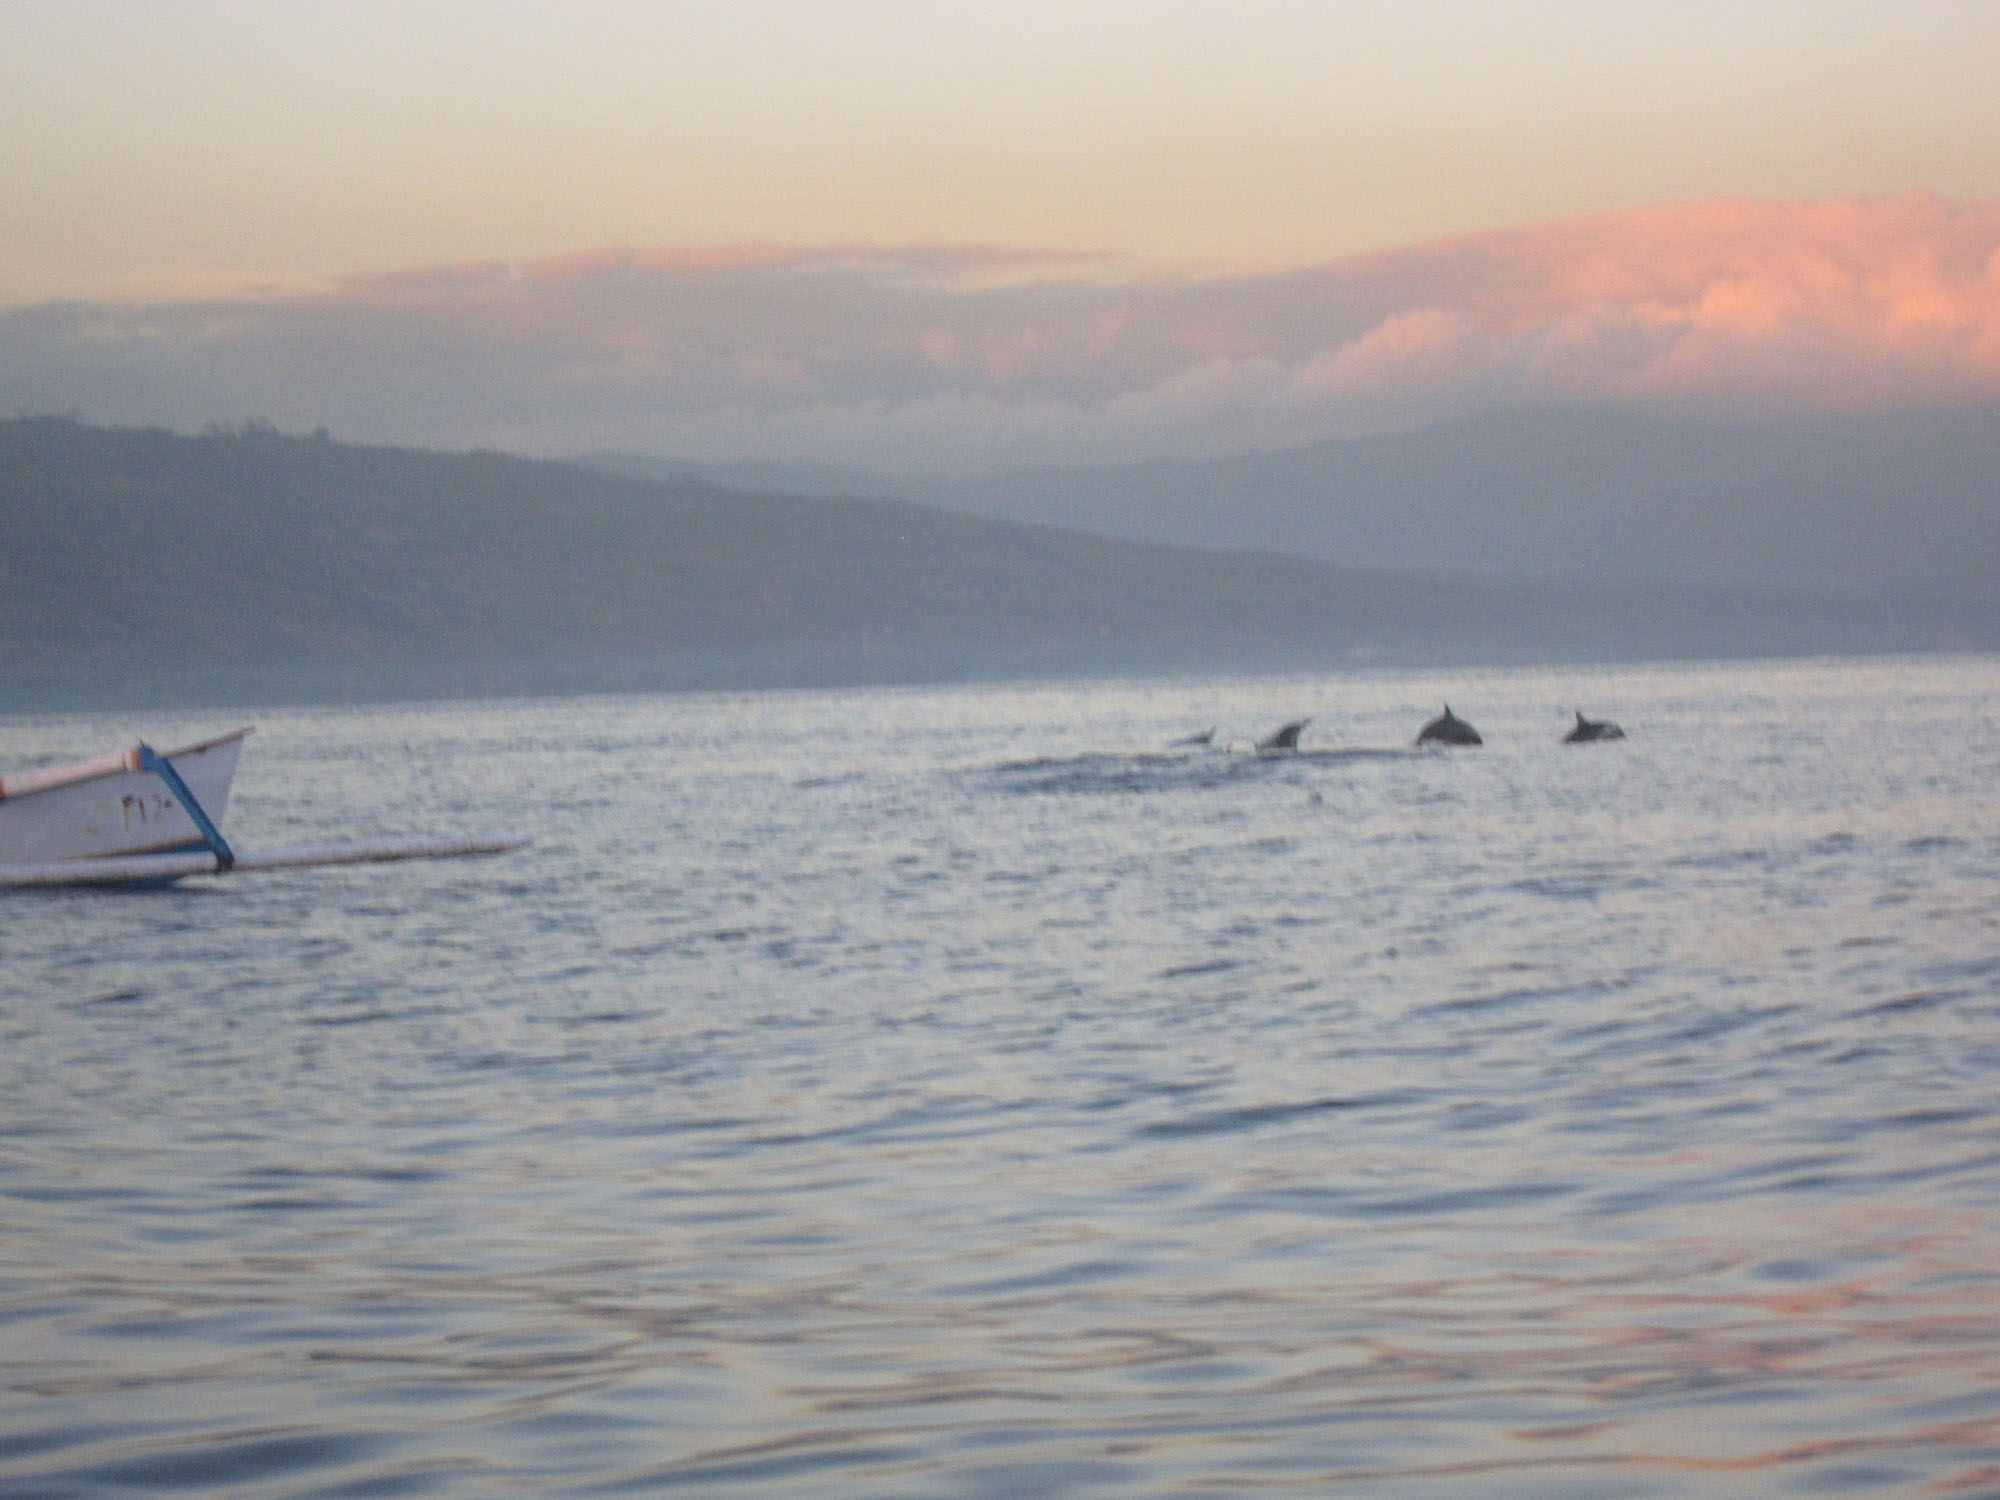 Dolphin watching in Lovina, Bali, Indonesia